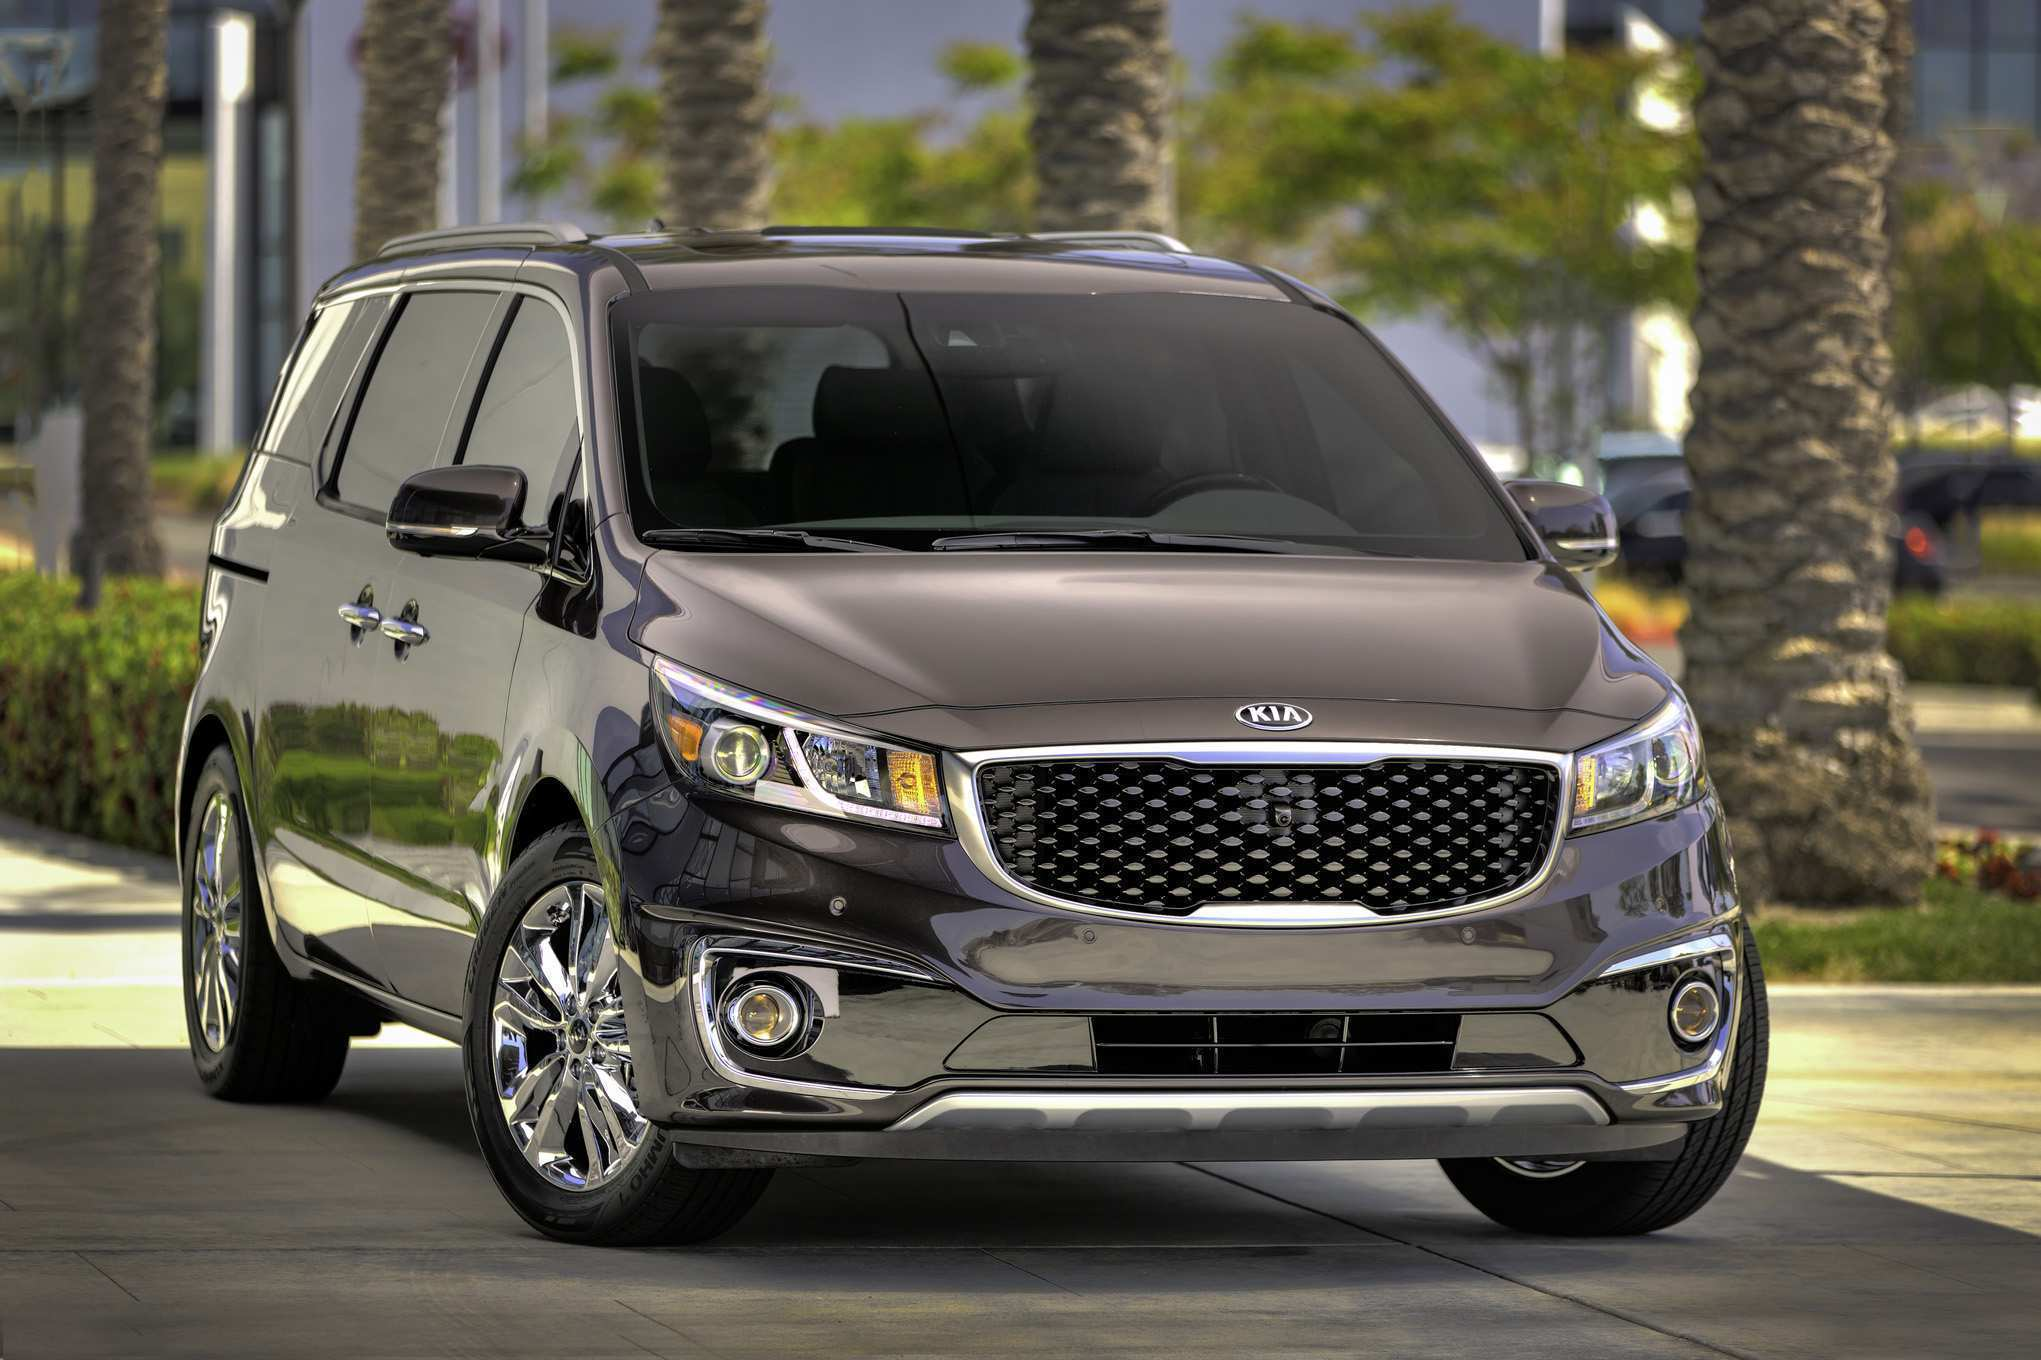 33 Great 2020 Kia Carnival 2018 Interior by 2020 Kia Carnival 2018